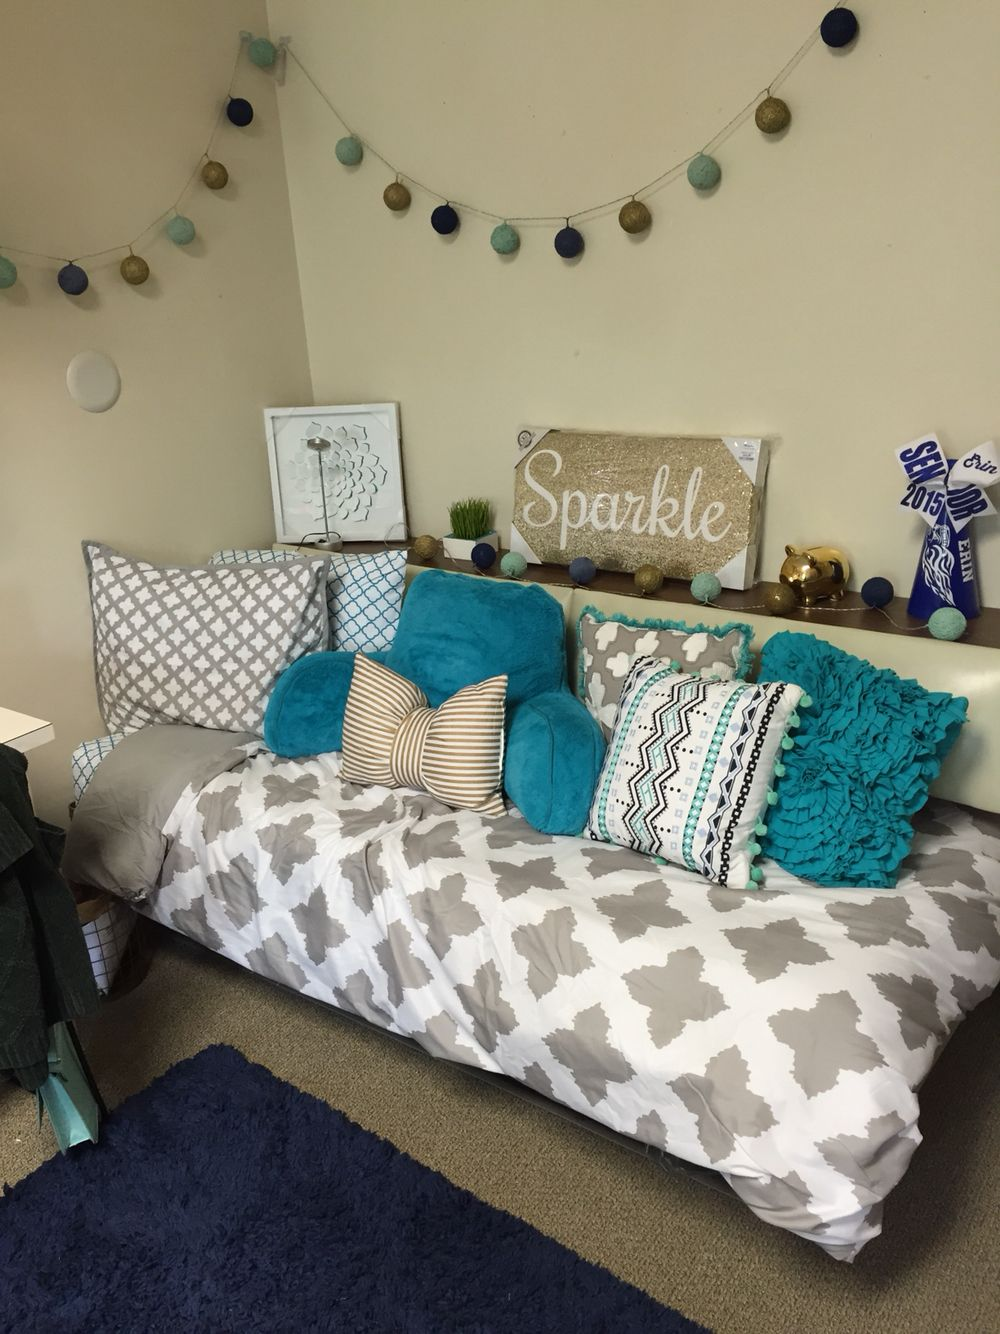 Decorating Ideas > Grey Teal Dorm Room With Navy, Mint, & Gold Accents #  ~ 183516_Gold Dorm Room Ideas